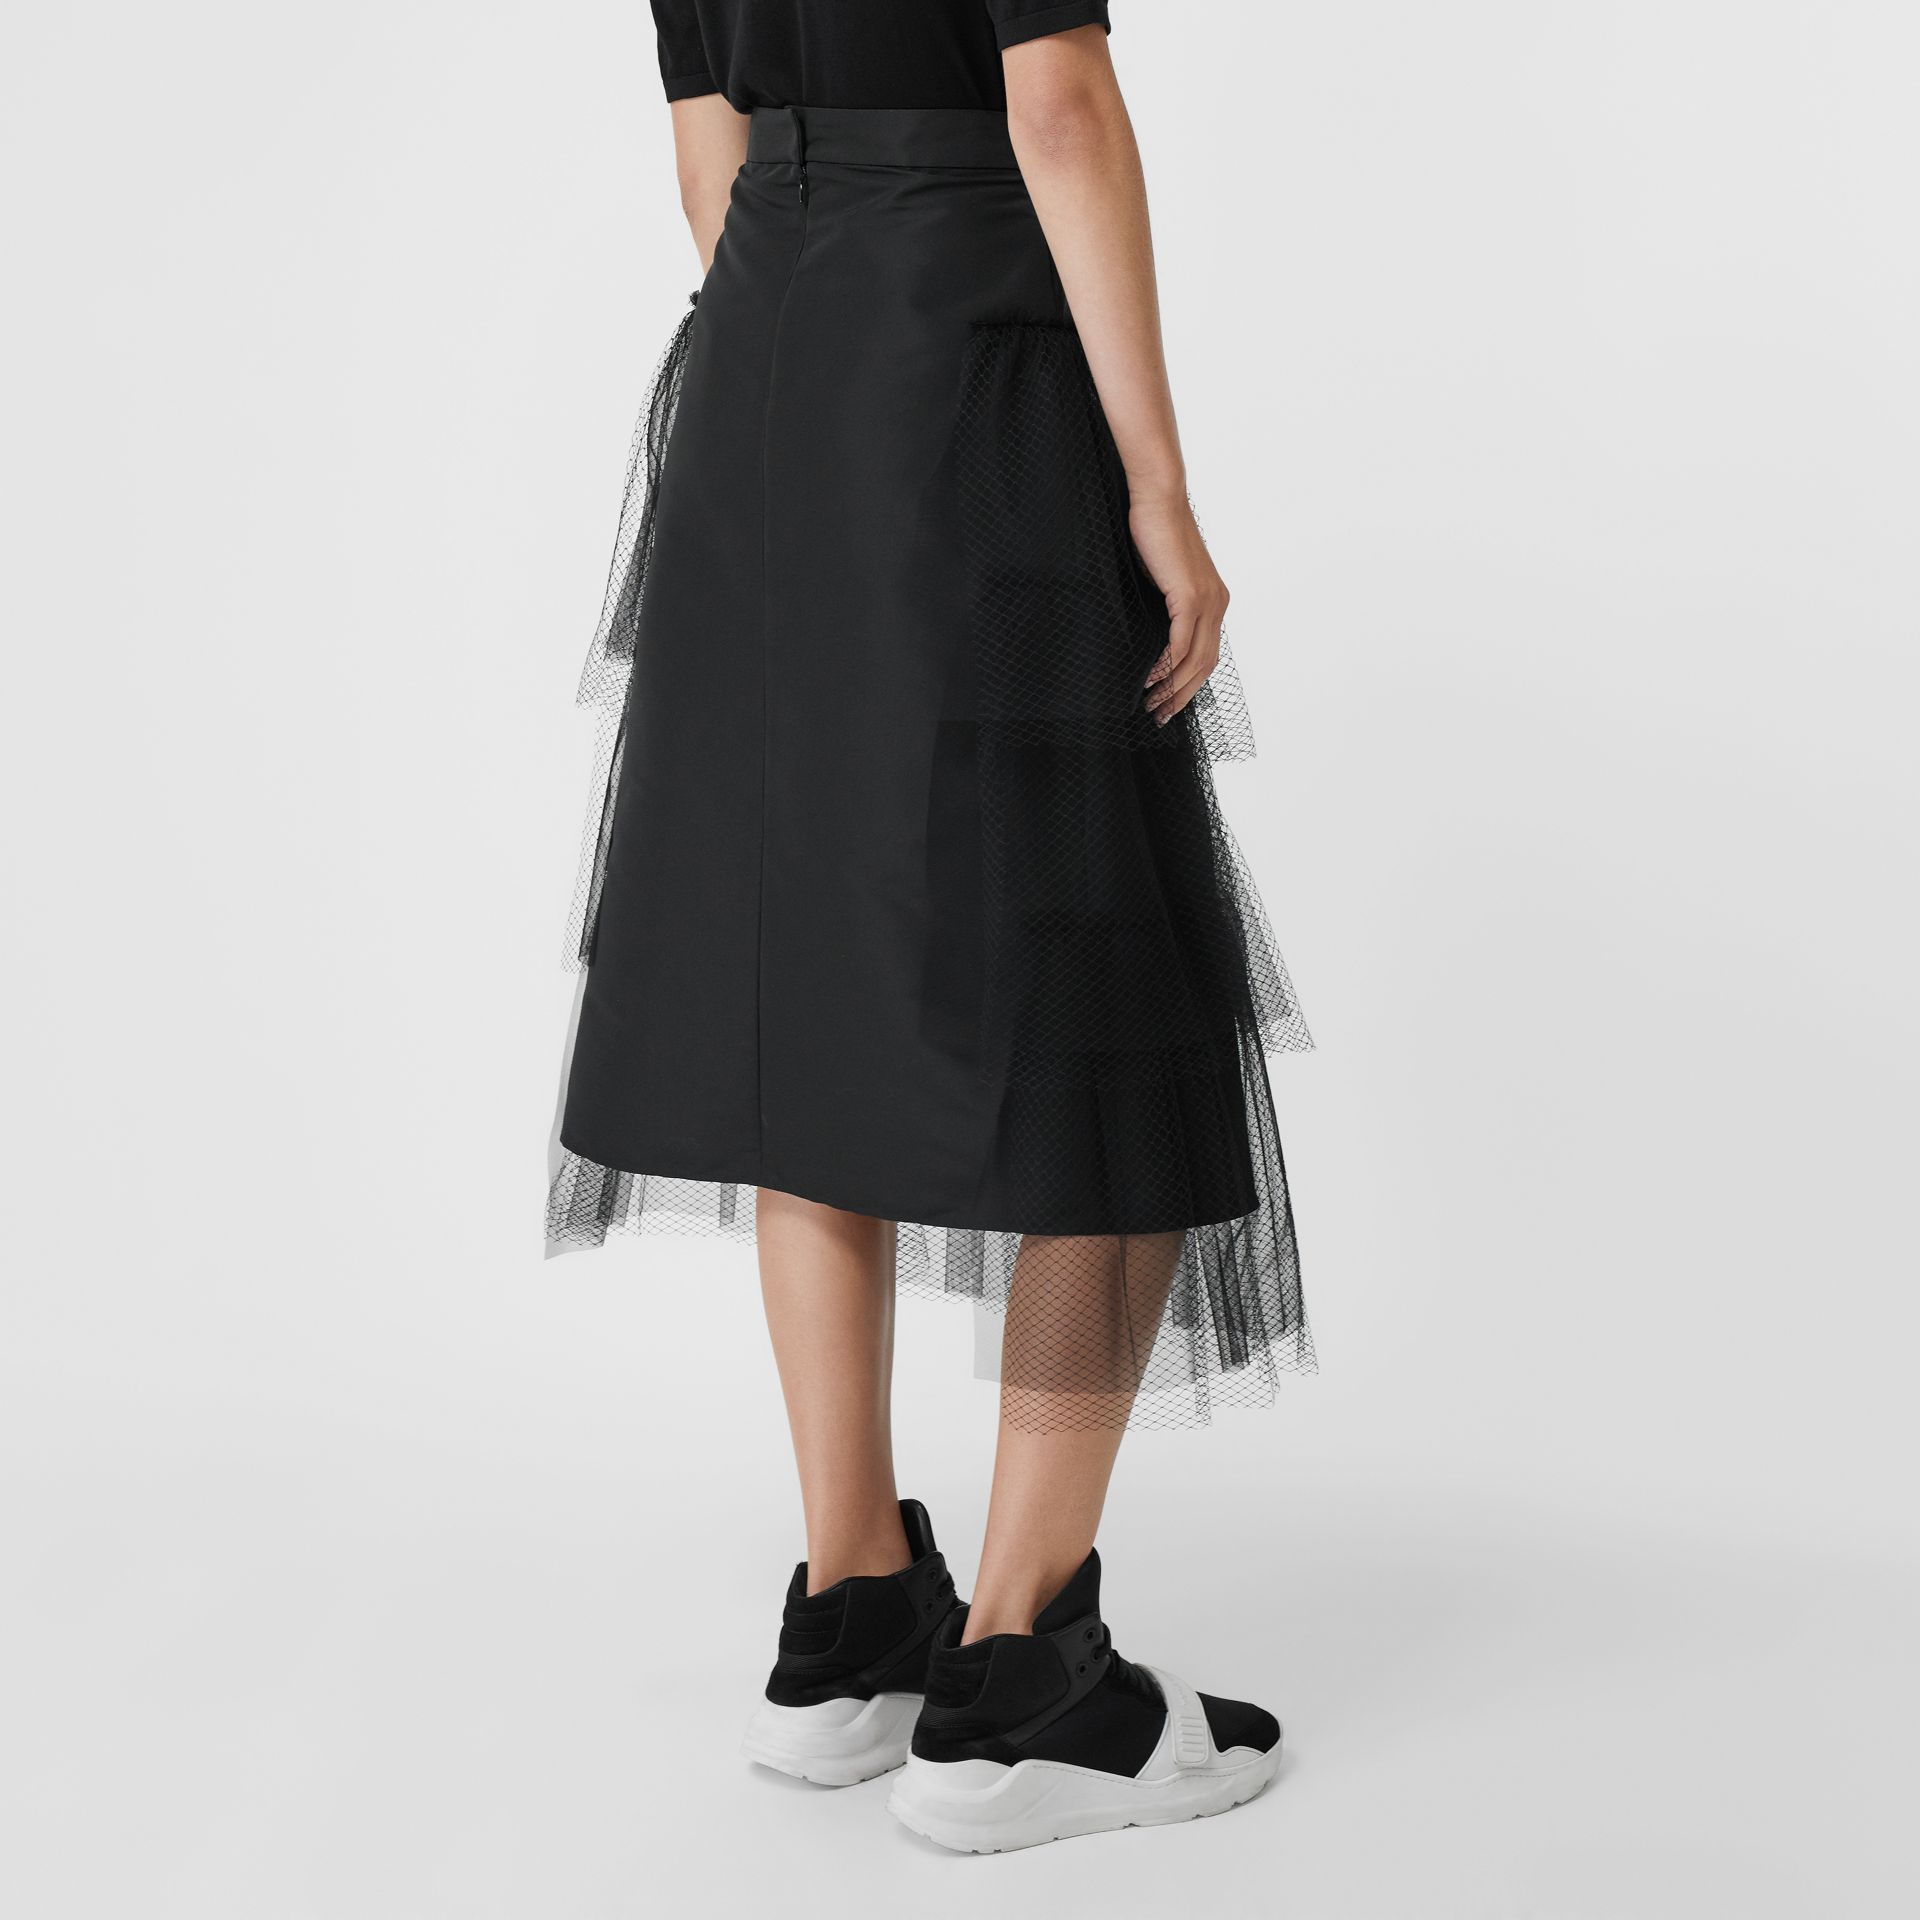 Tiered Tulle A-line Skirt in Black - Women | Burberry - gallery image 2